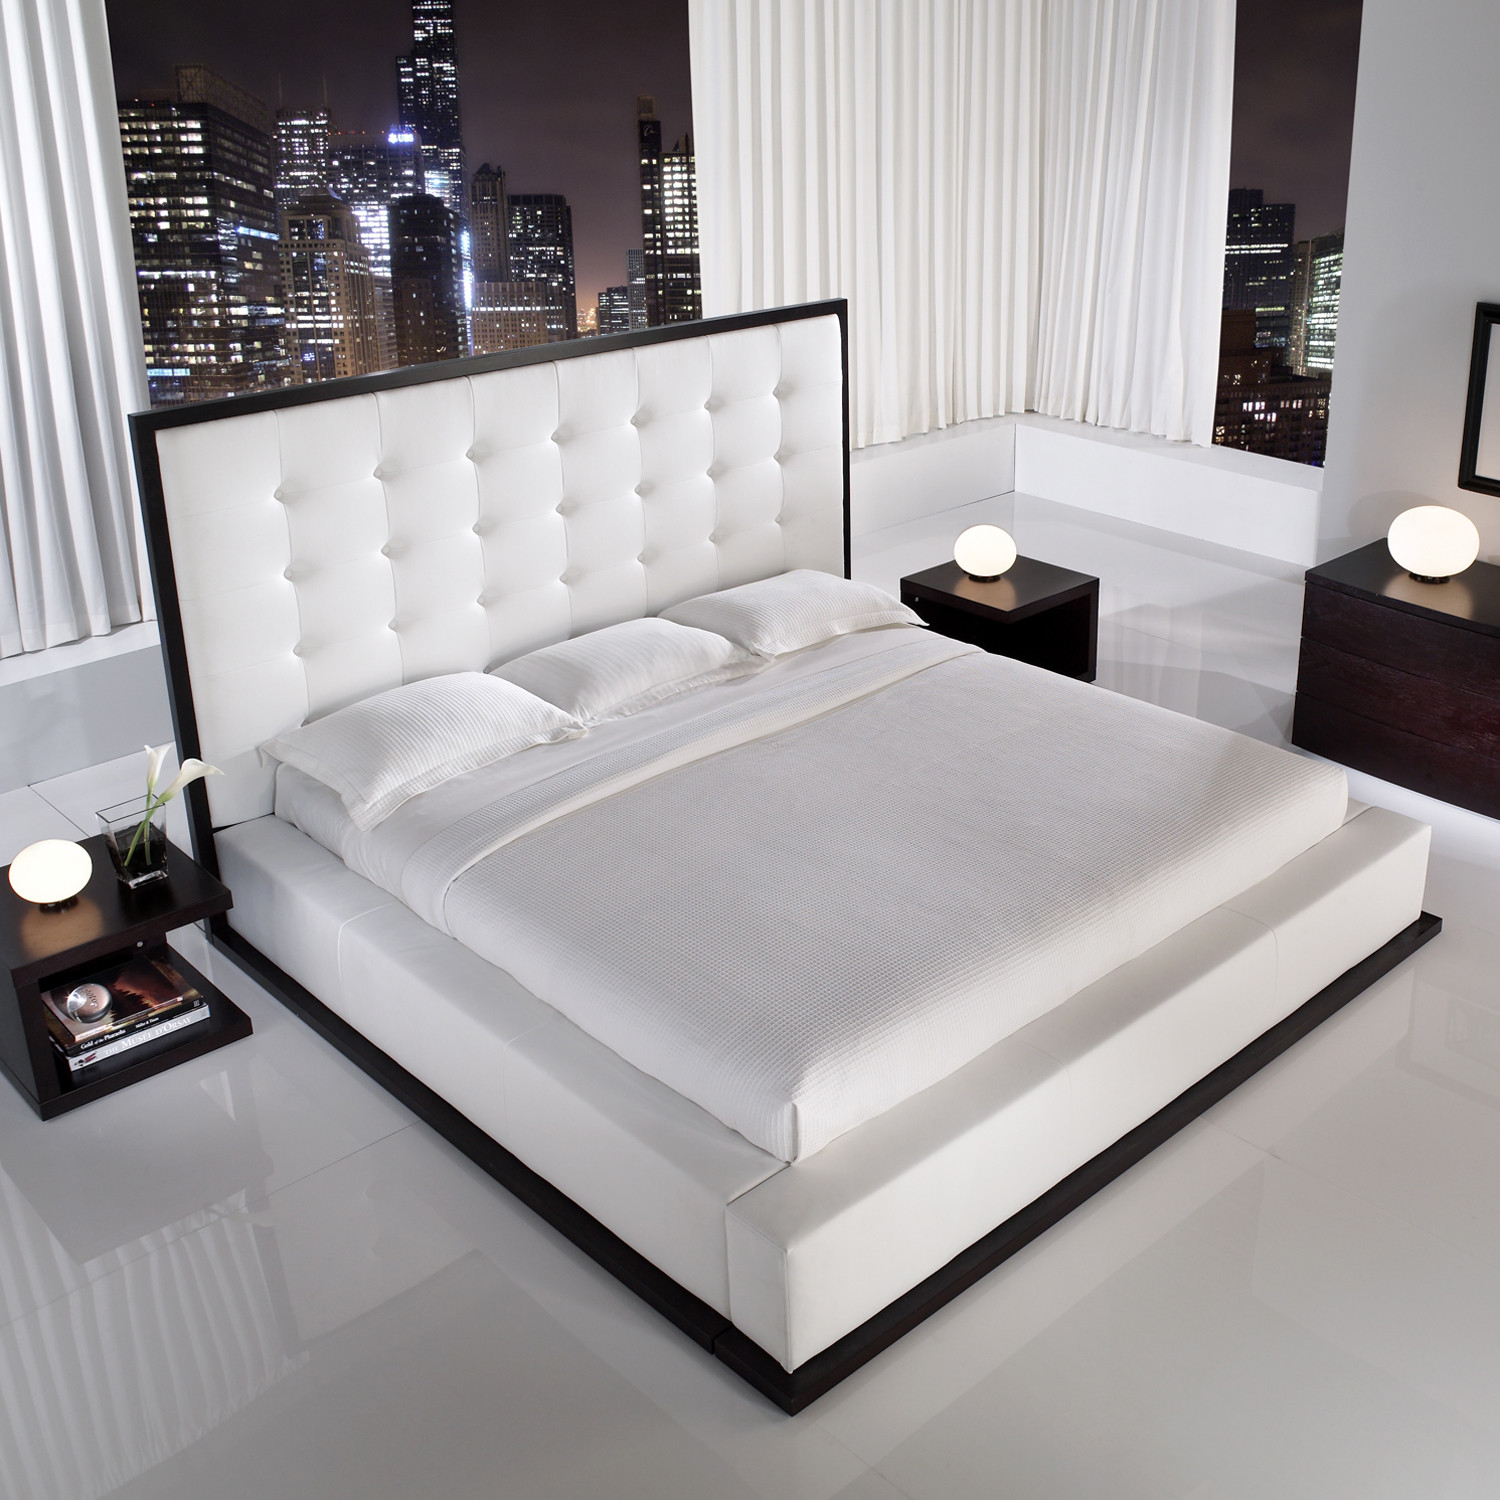 ludlow bed in wenge  white leather (queen)  modloft bedroom  - ludlow bed in wenge  white leather (queen)